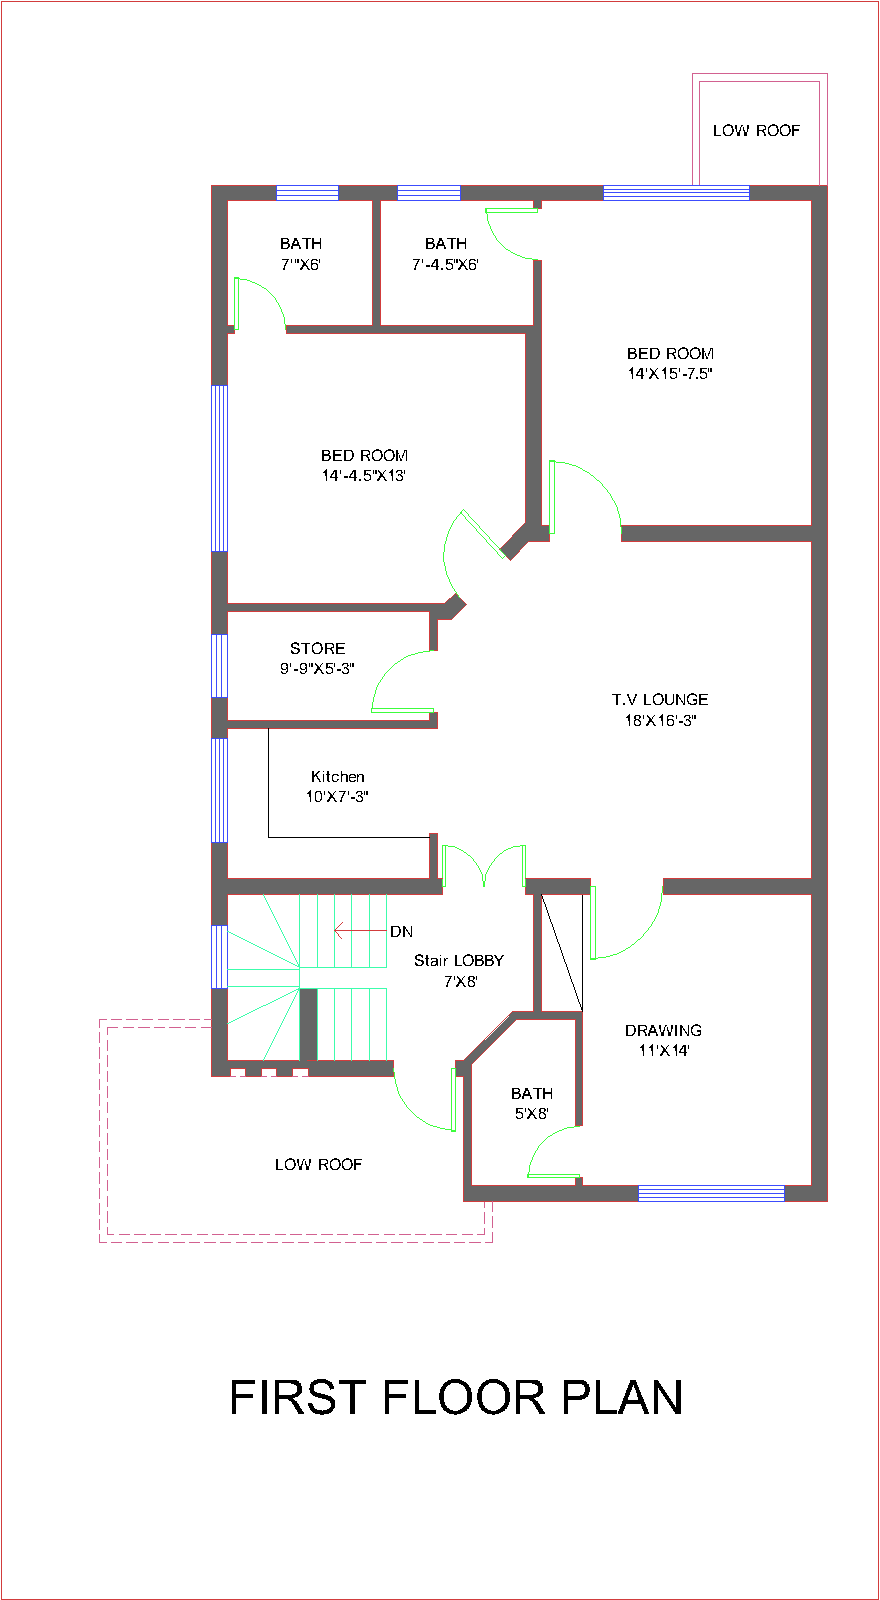 10 marla house plan layout in pakistan joy studio design 5 marla house plan 3d